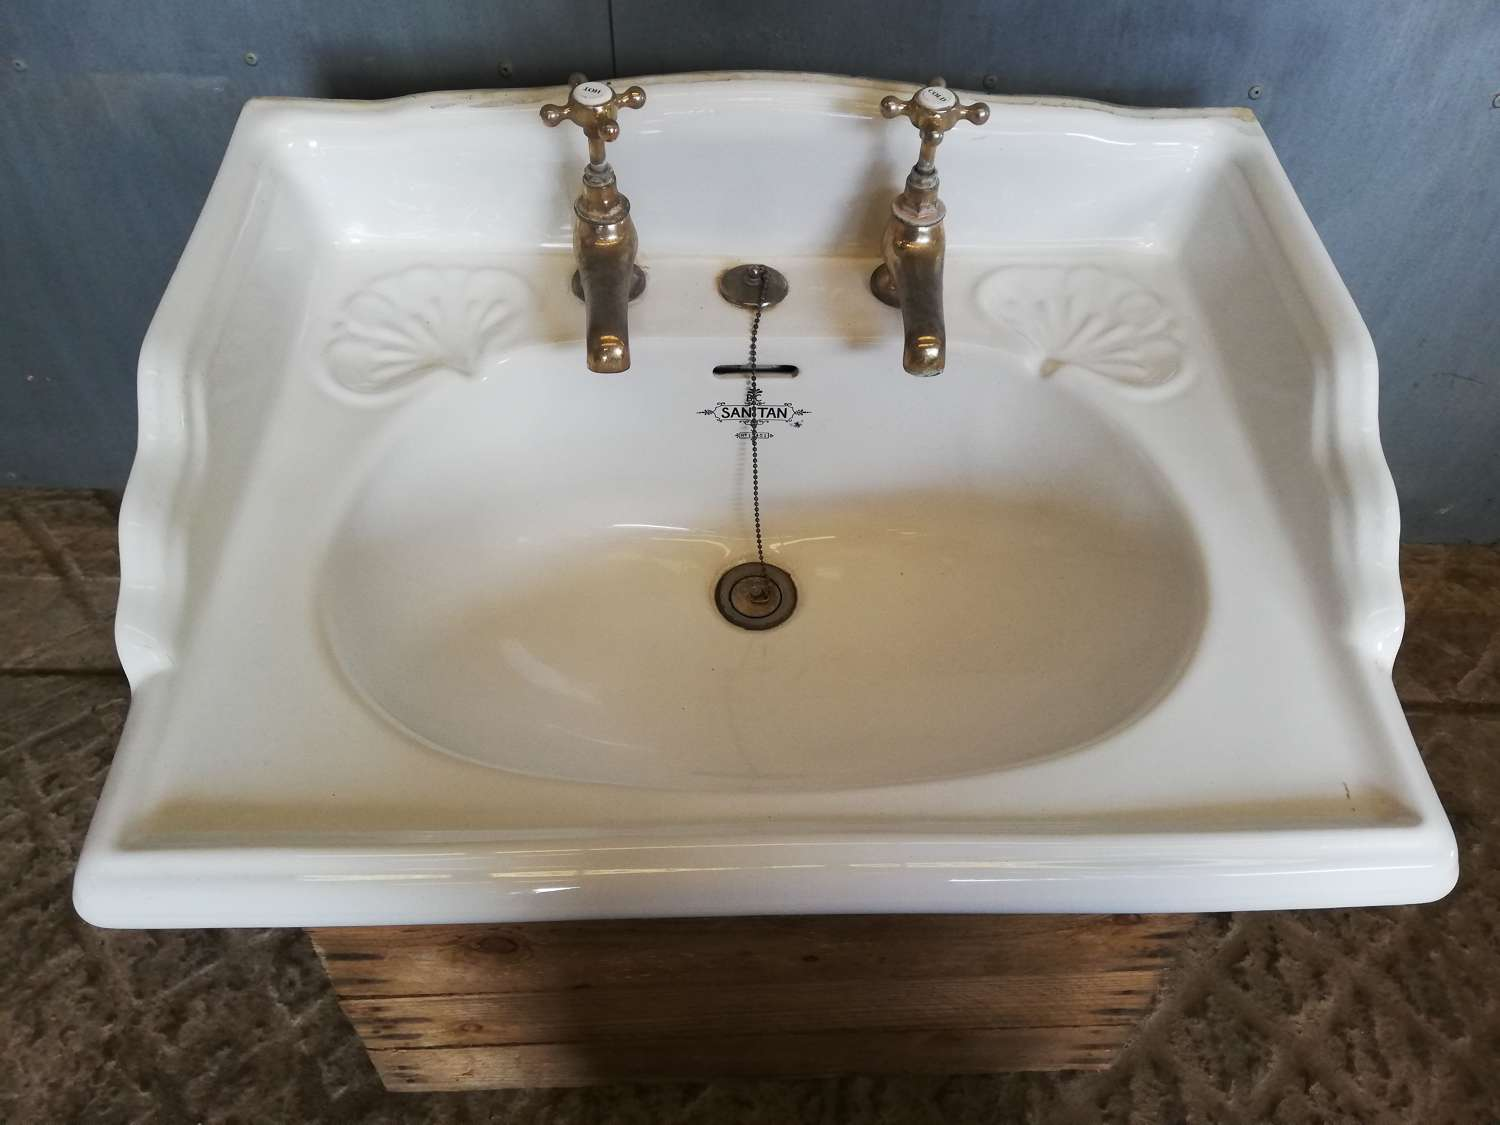 M1336 ATTRACTIVE RECLAIMED EDWARDIAN STYLE SANITAN SINK